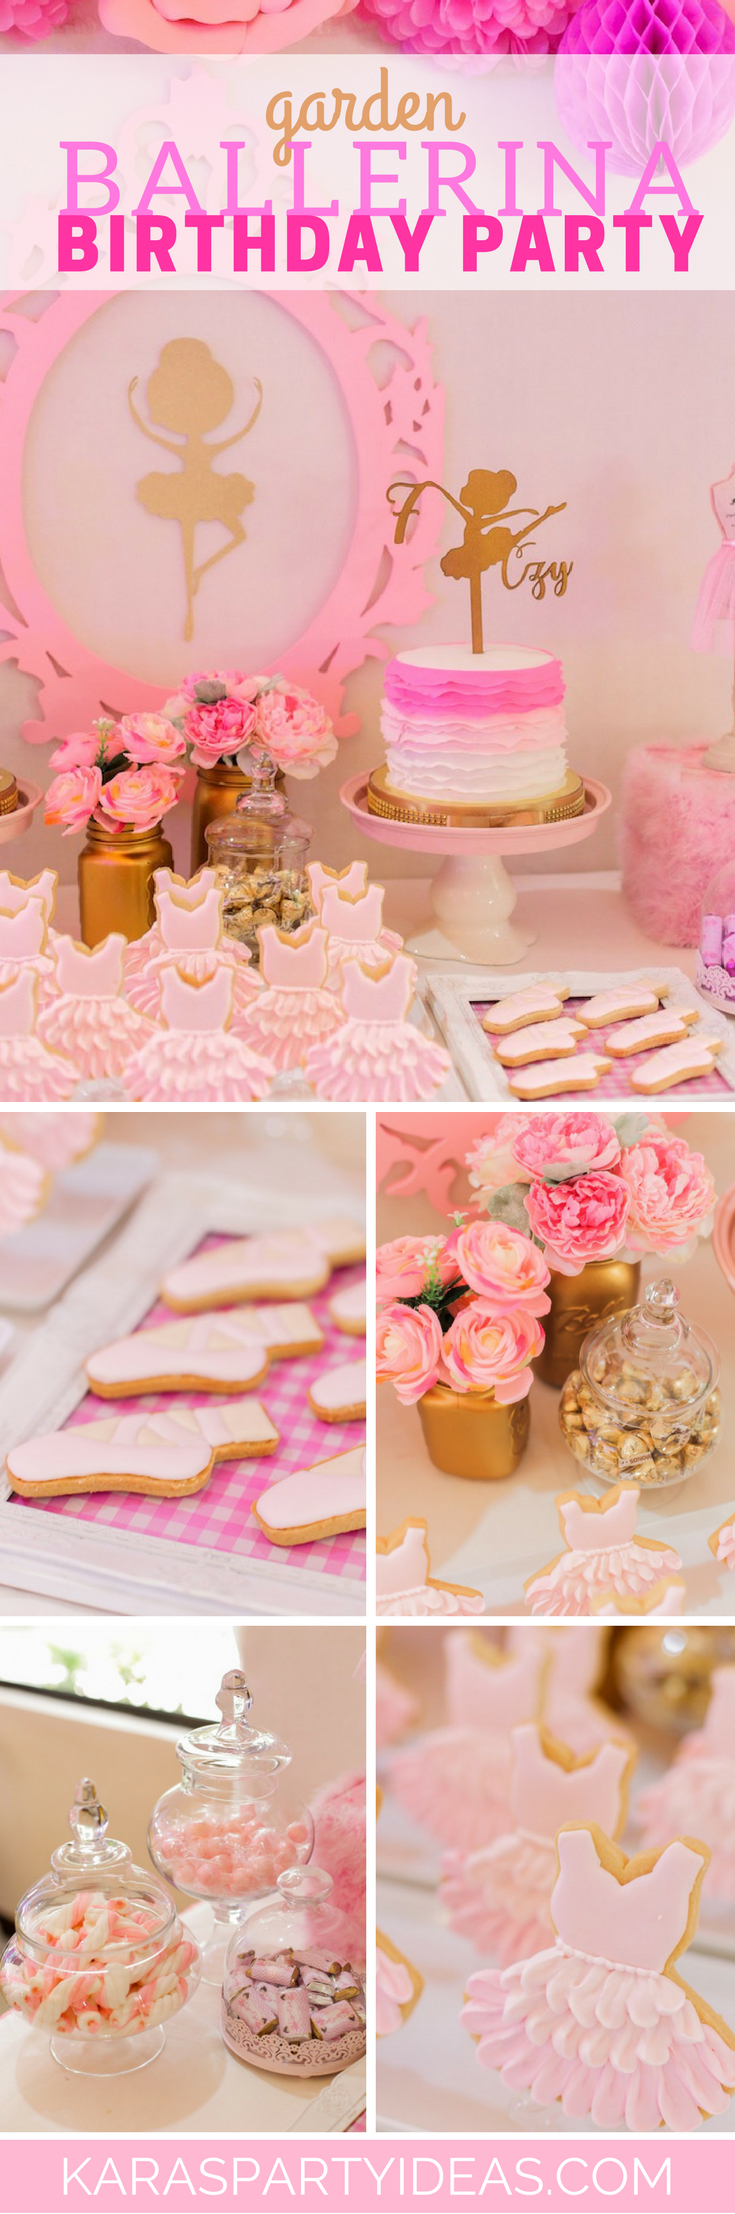 Garden Ballerina Birthday Party via Kara's Party Ideas - KarasPartyIdeas.com